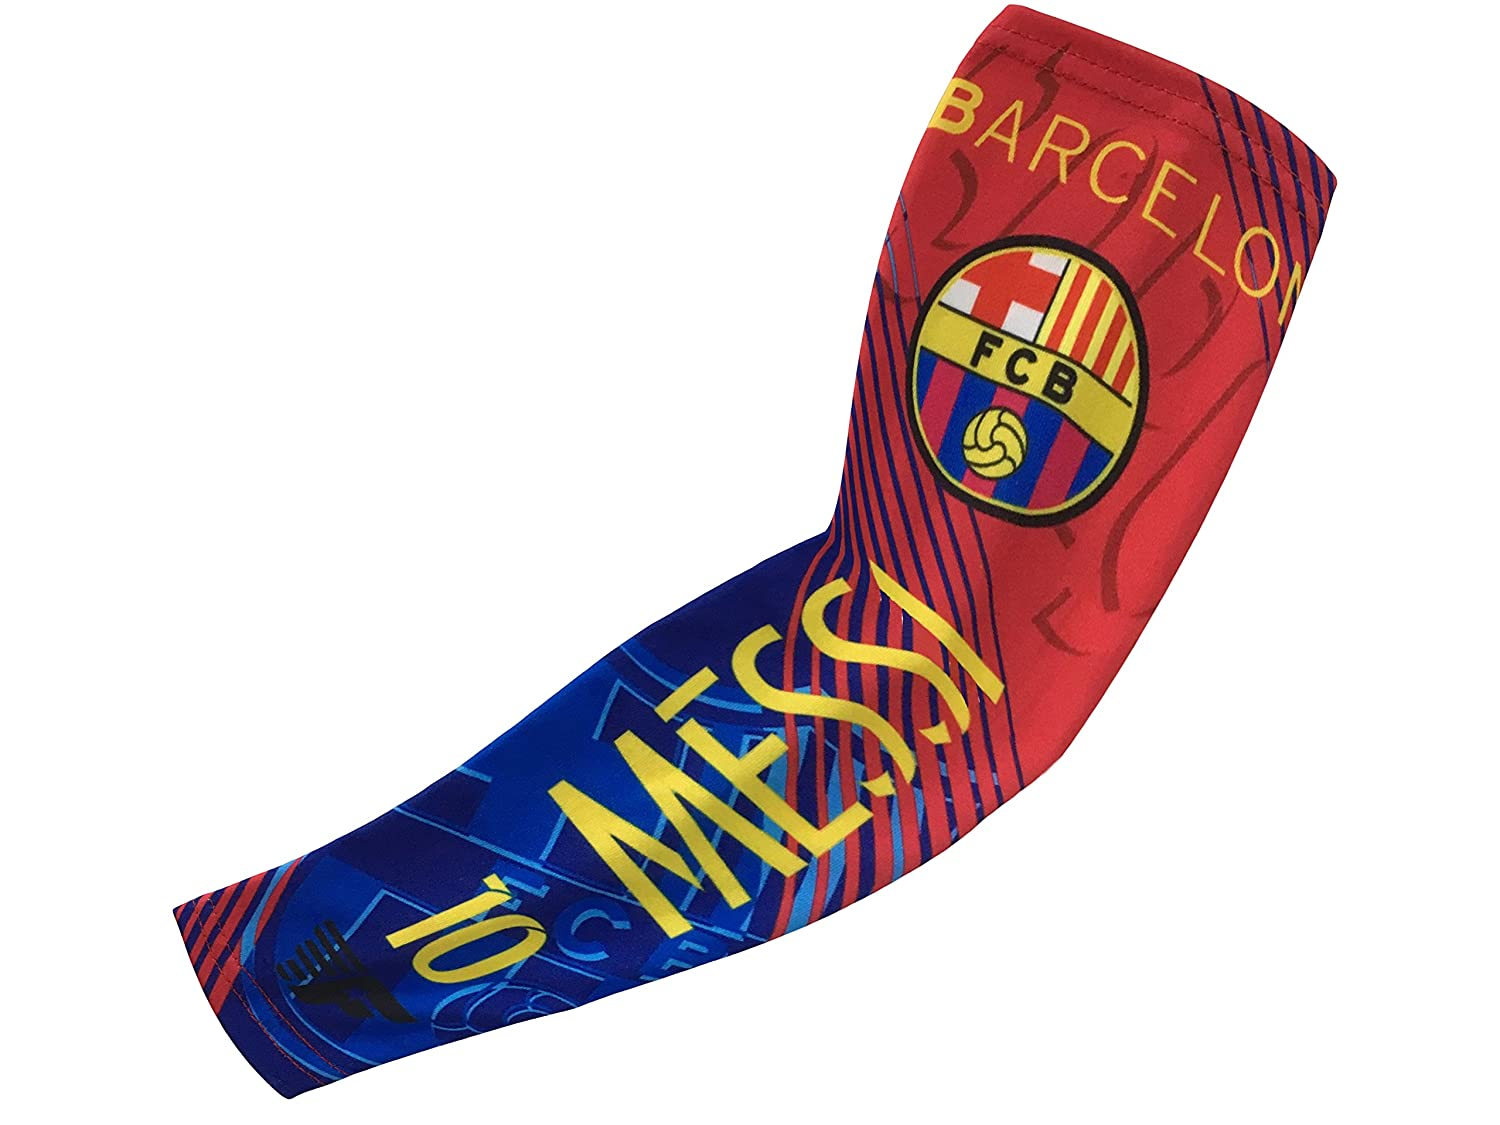 f427dd2cab8e Forever Fanatics Barcelona Messi  10 Soccer Fan Compression Arm Sleeves  ✓Breathable Apparel ✓ Muscle Recovery ✓ Improve Circulation (Youth Size  (6-13 ...